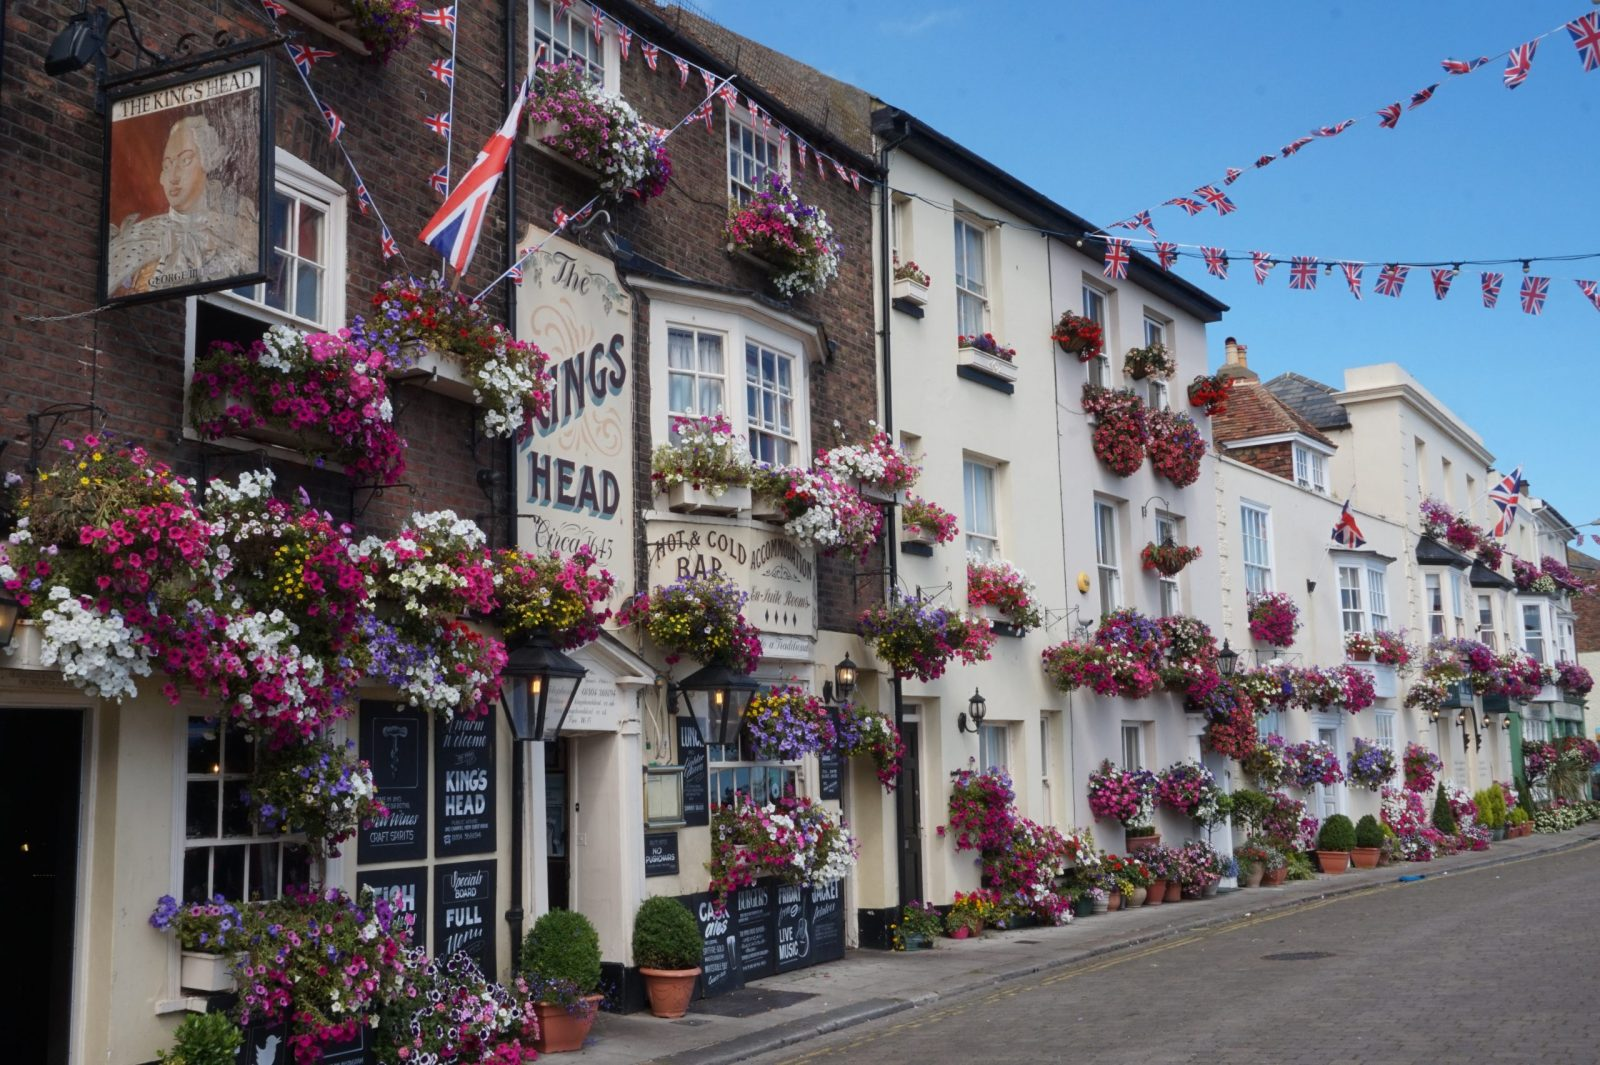 A Day Trip to Deal, Kent: Photo Gallery 1